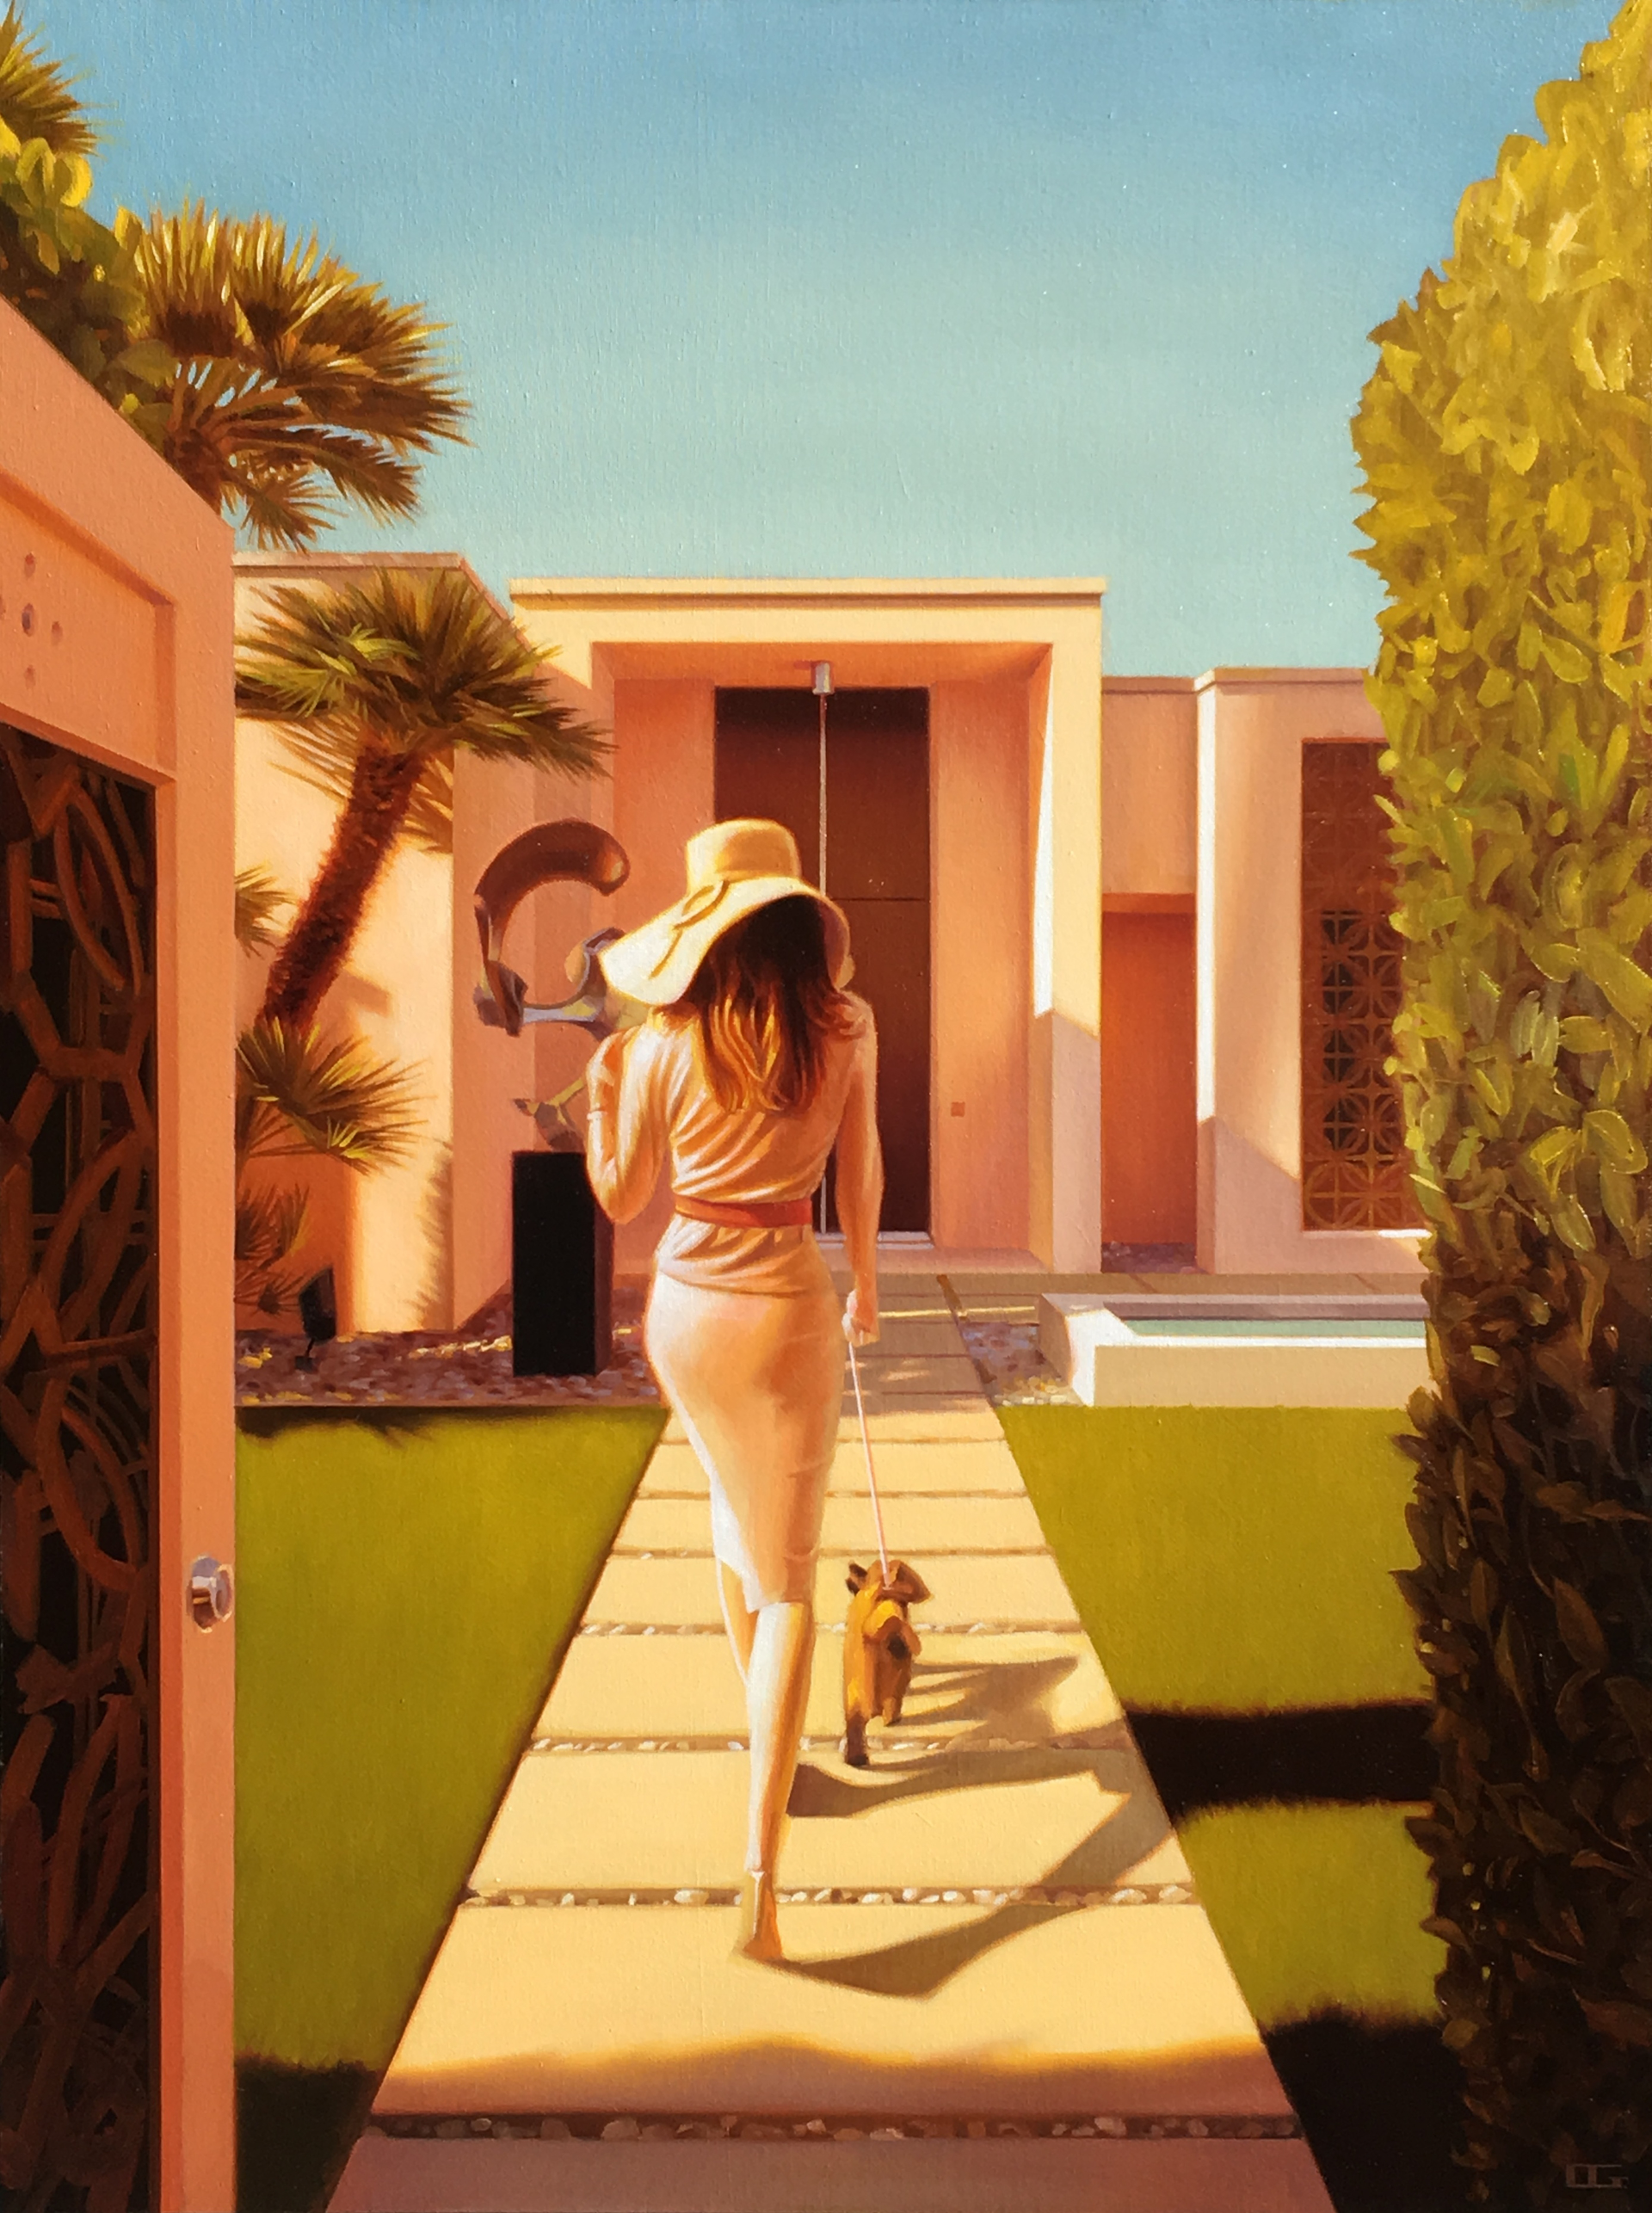 Great Strides (S/N) by Carrie Graber